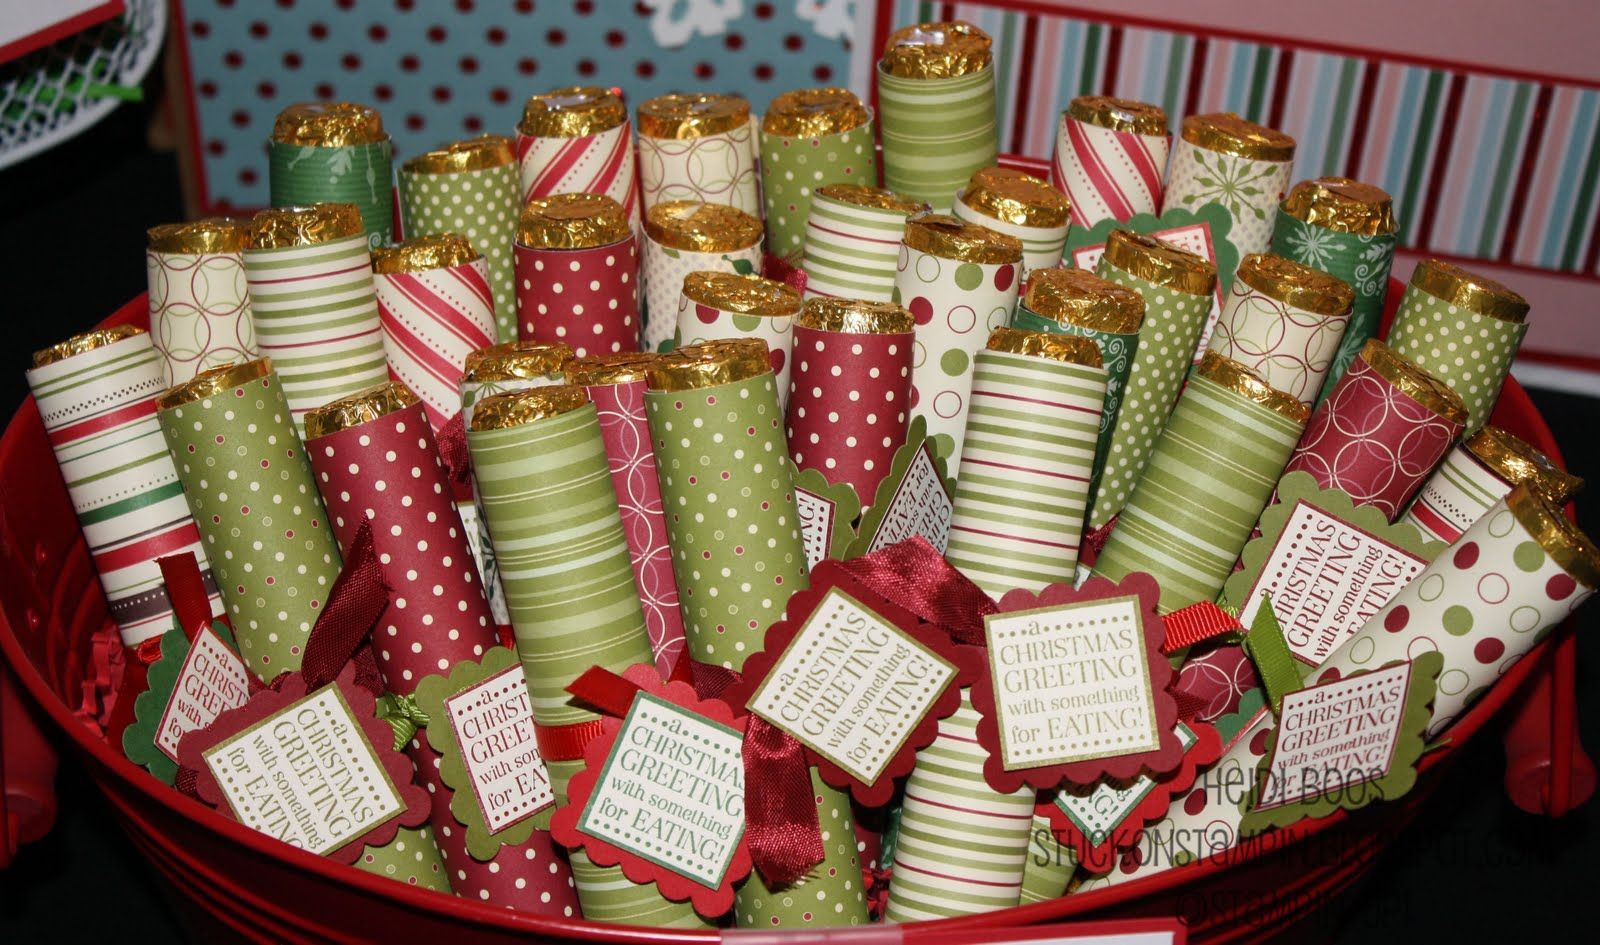 Stampin Up Christmas Craft Fair Ideas Part - 18: Christmas Project #6 Wrapped Rolos This Next Project Is One Of Those Super  Easy Treats